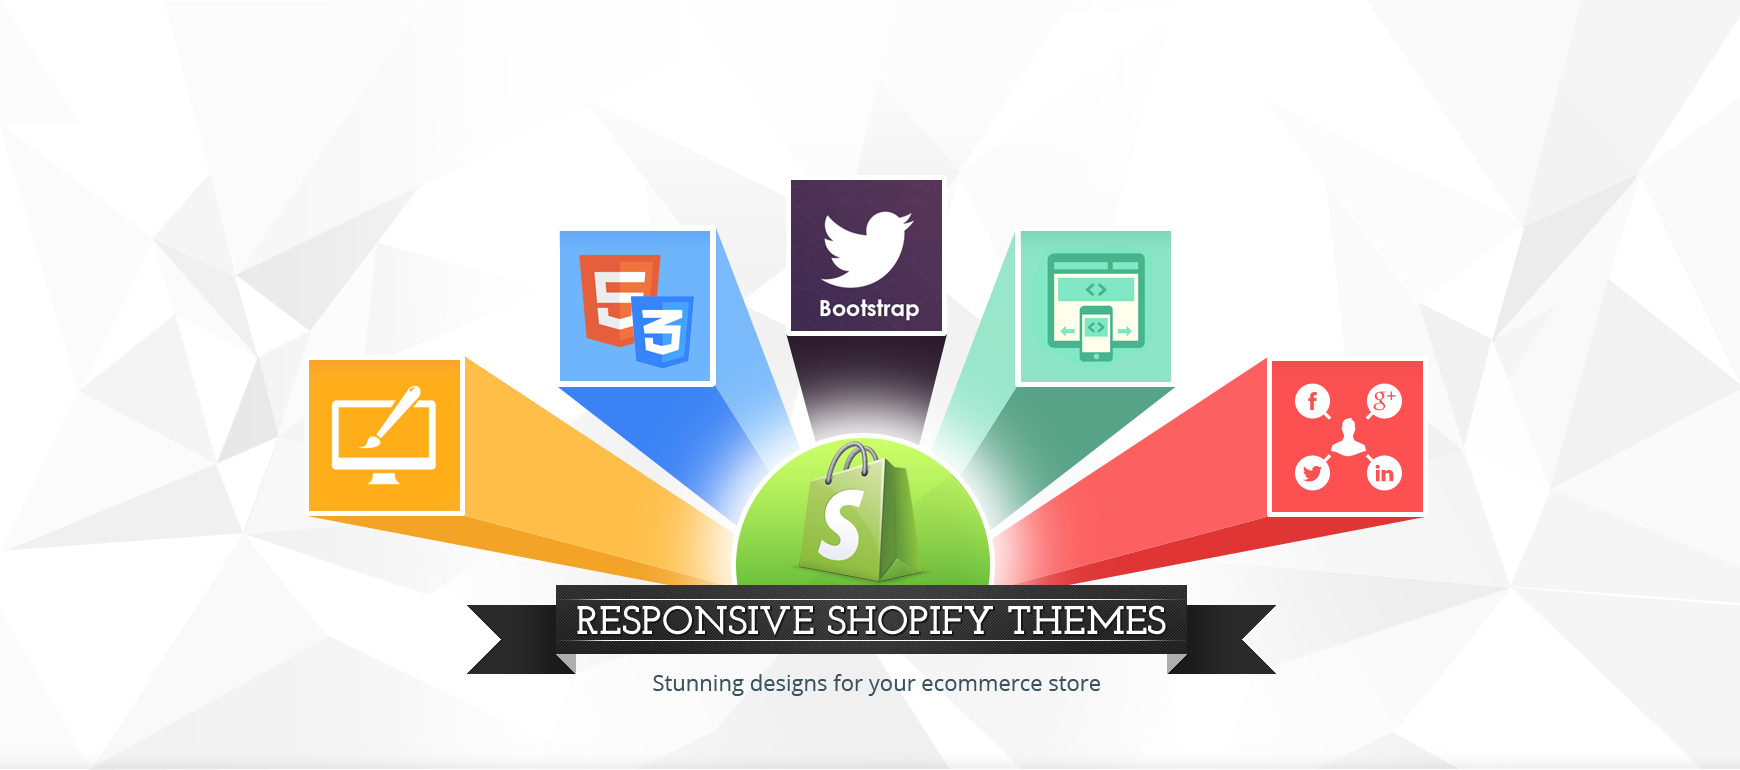 TOP 10 SHOPIFY THEMES